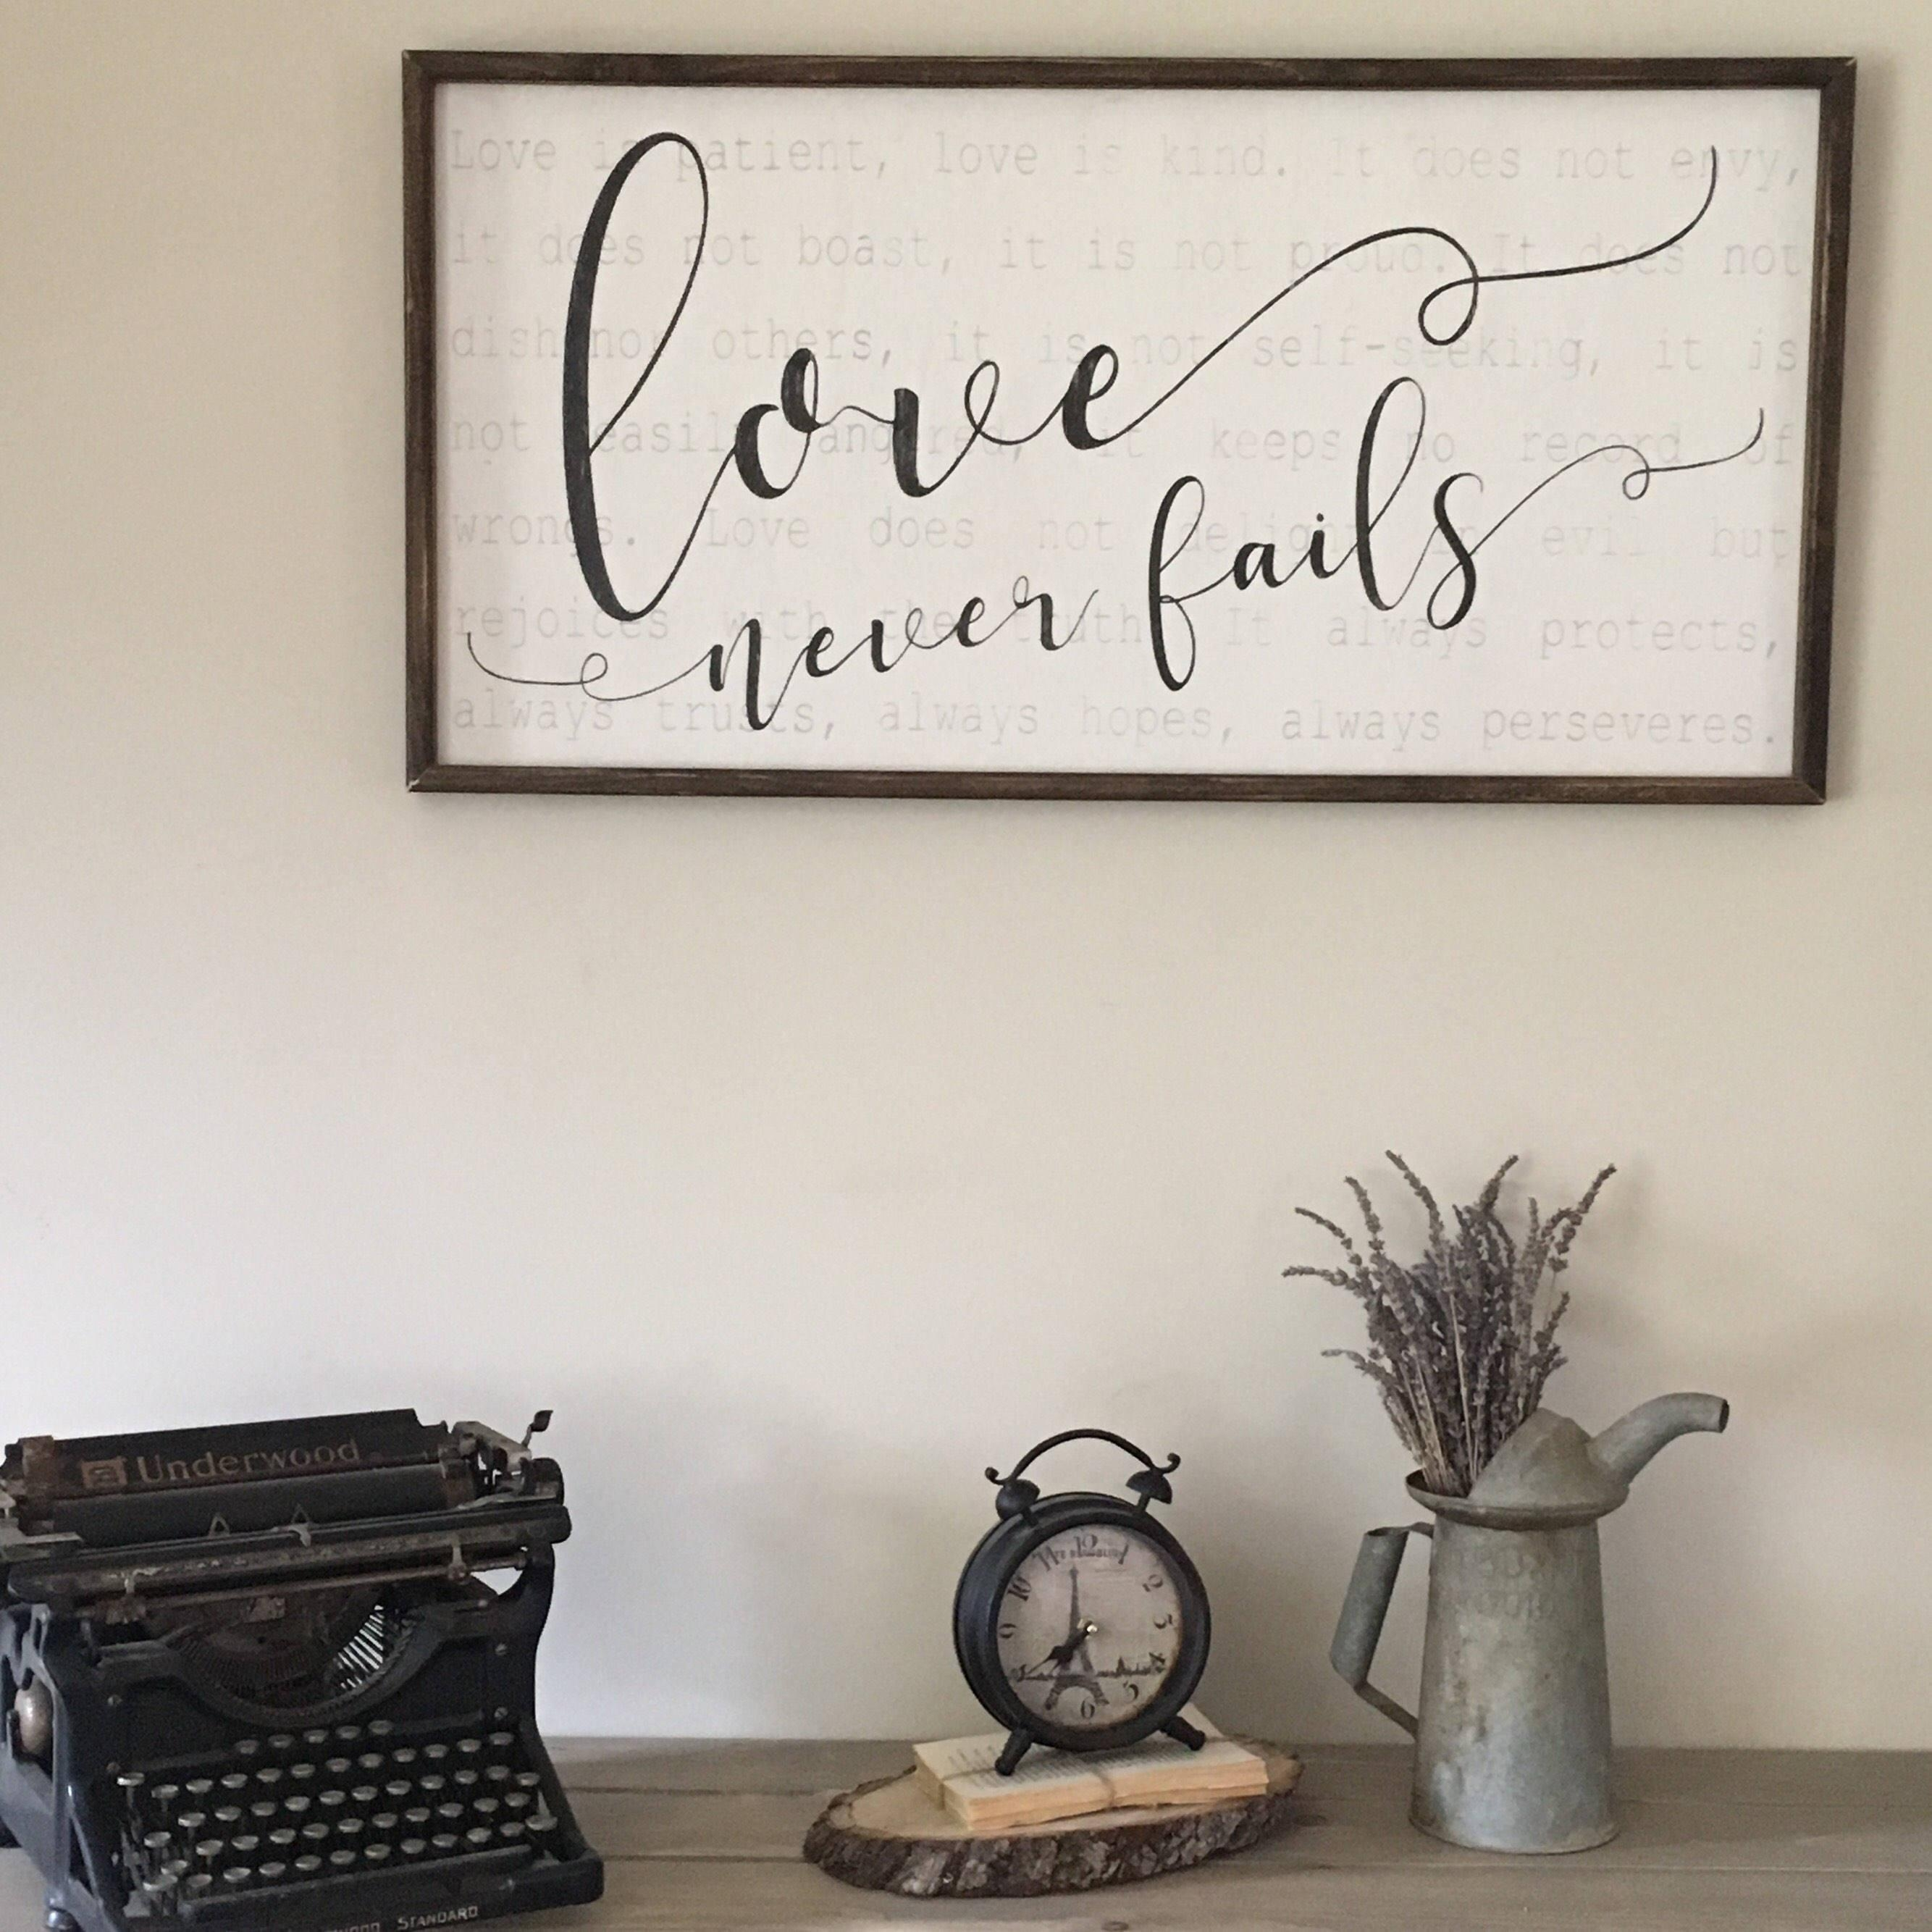 Featured Image of 1 Corinthians 13 Wall Art